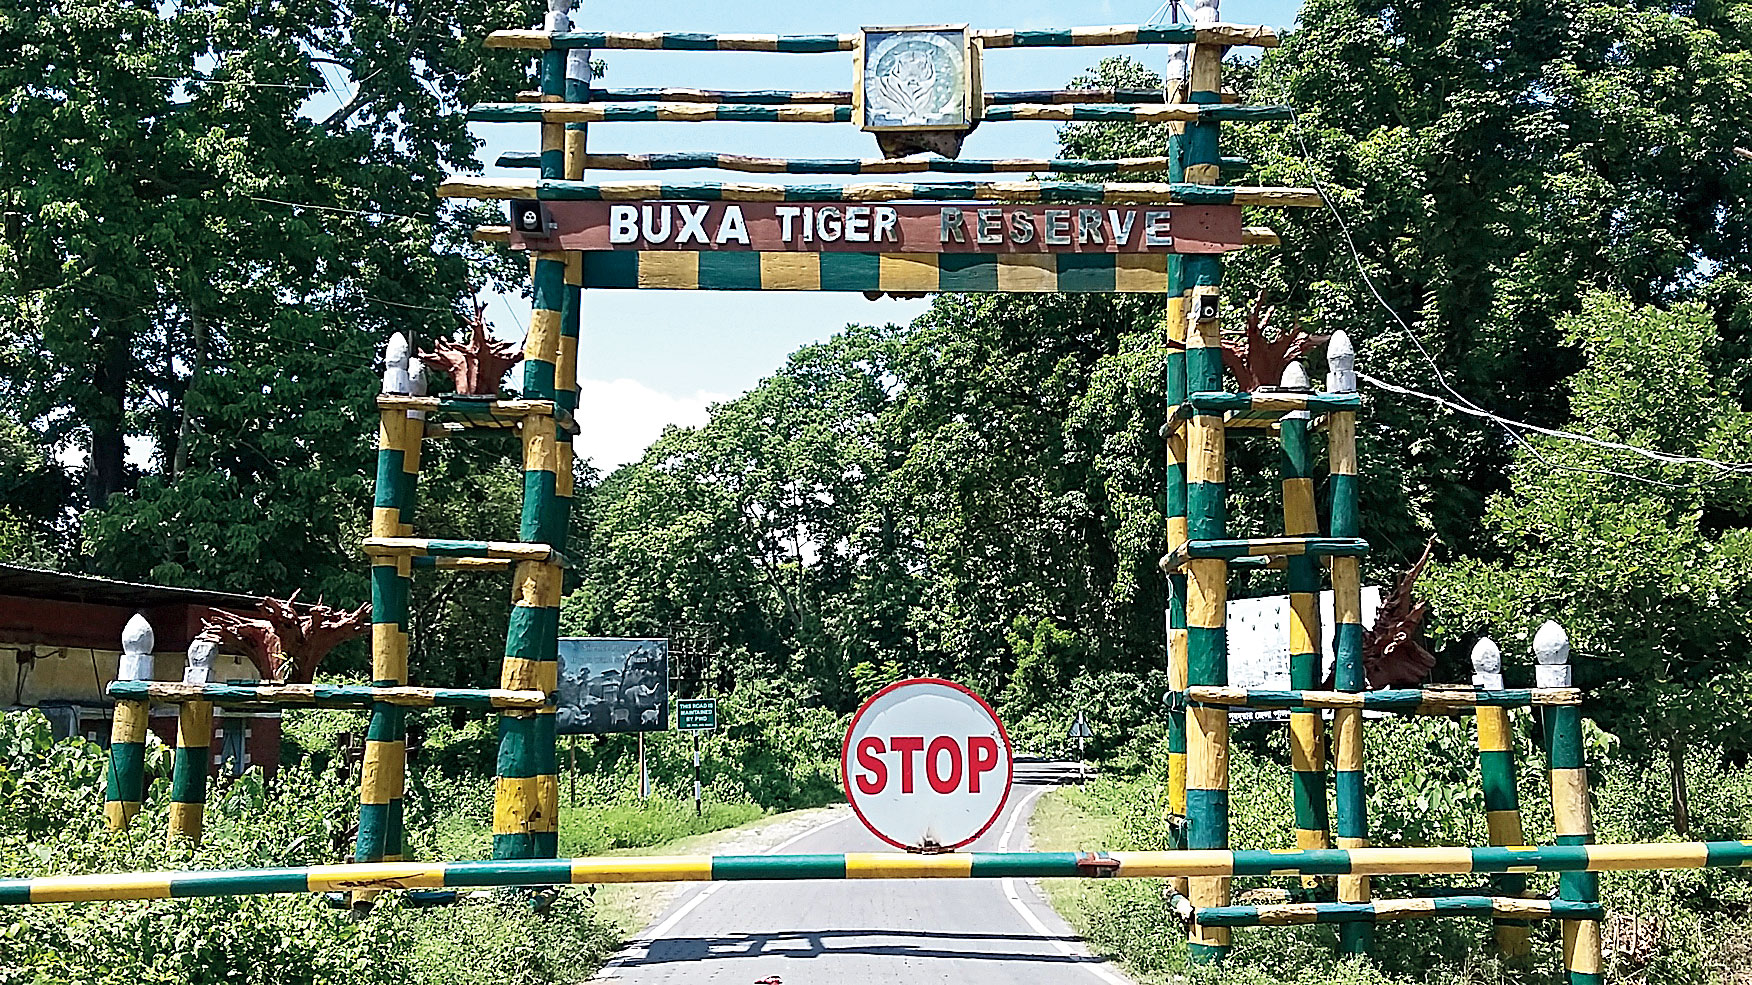 The entrance to the Buxa Tiger Reserve.